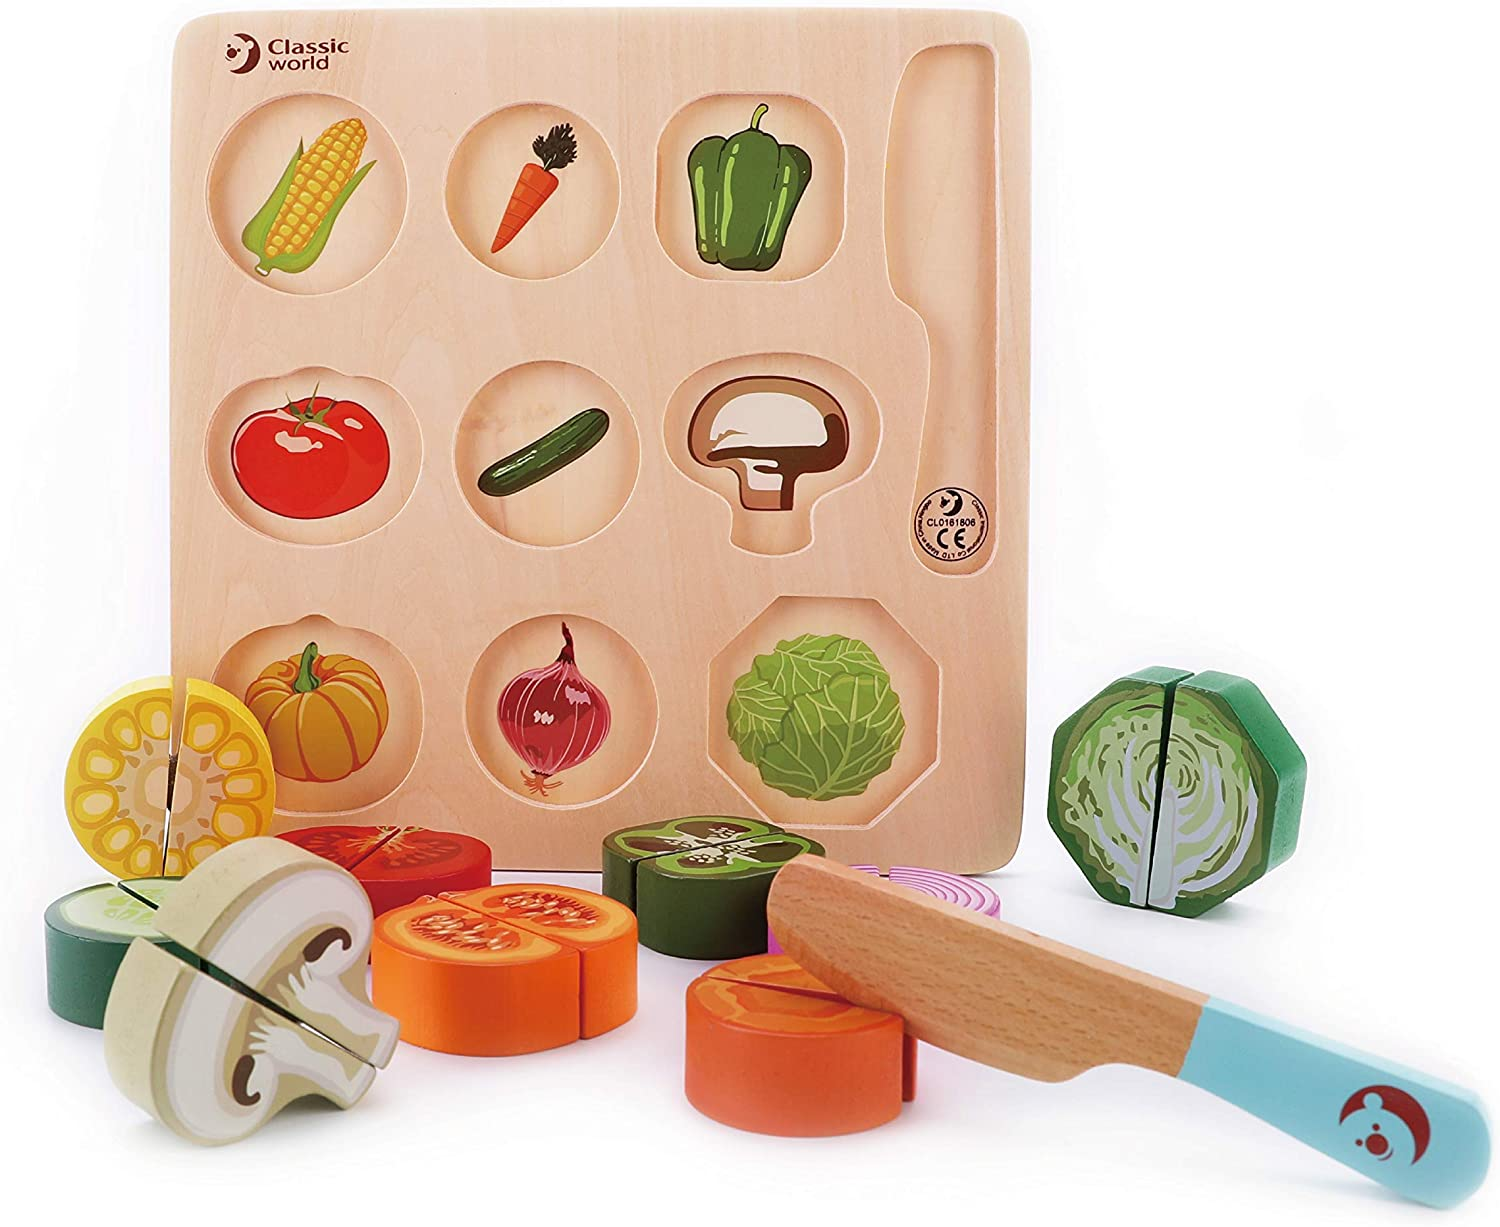 Classic World Wooden Cutting Vegetables Set for Kids,Pretend Play Food Toy Set with Wooden Knife and Tray